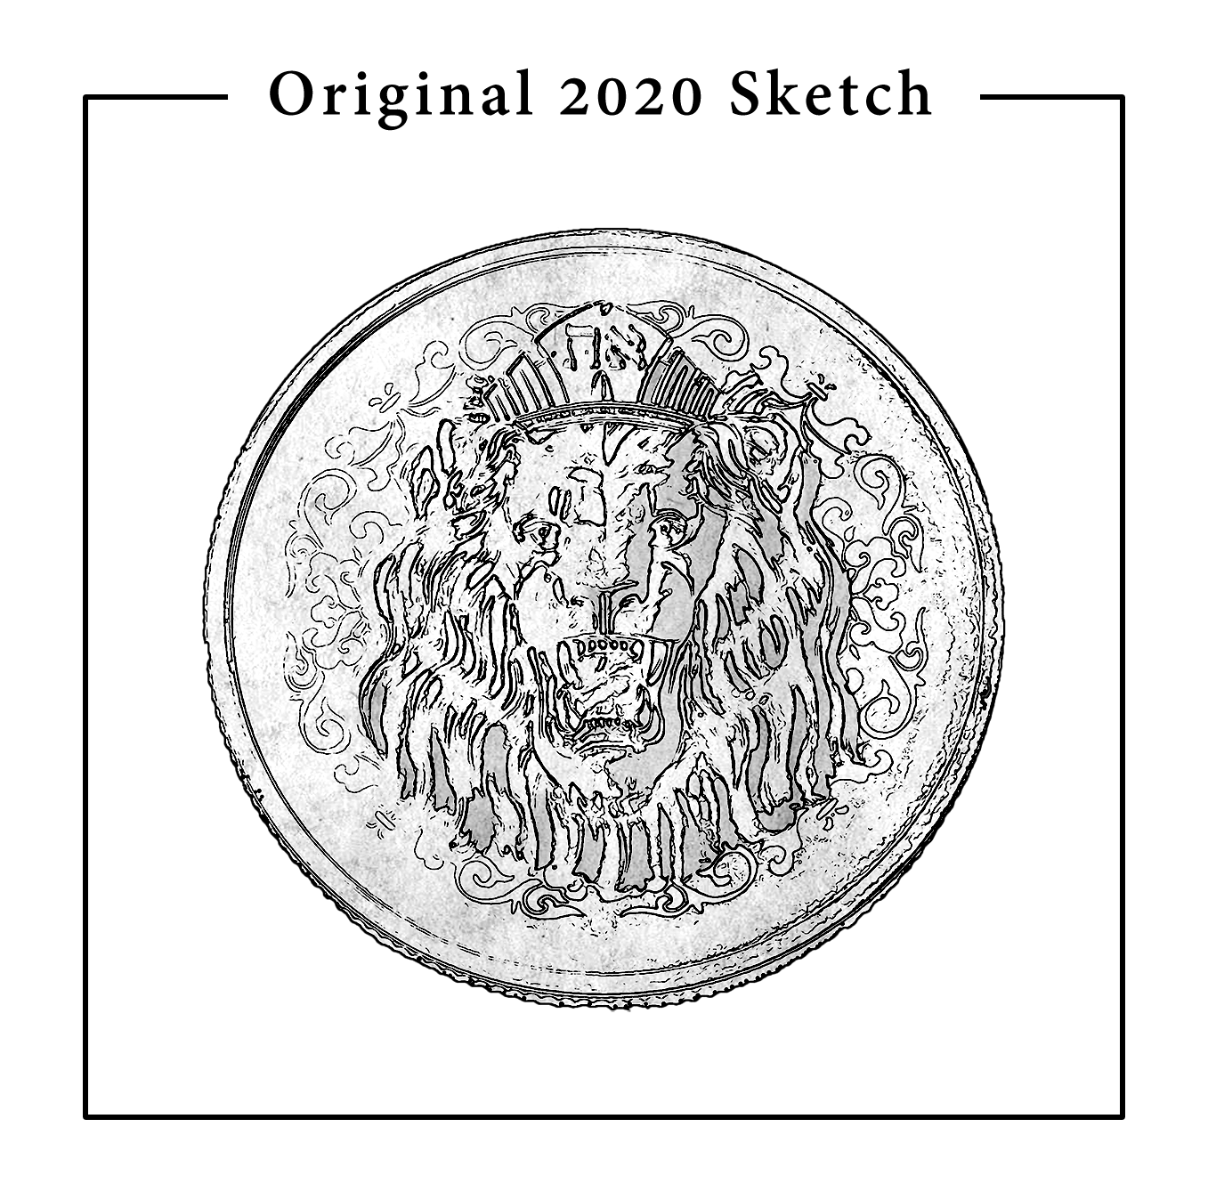 2020 Truth Coin Series 2020 Roaring Lion Tree Of Life Silver Coins